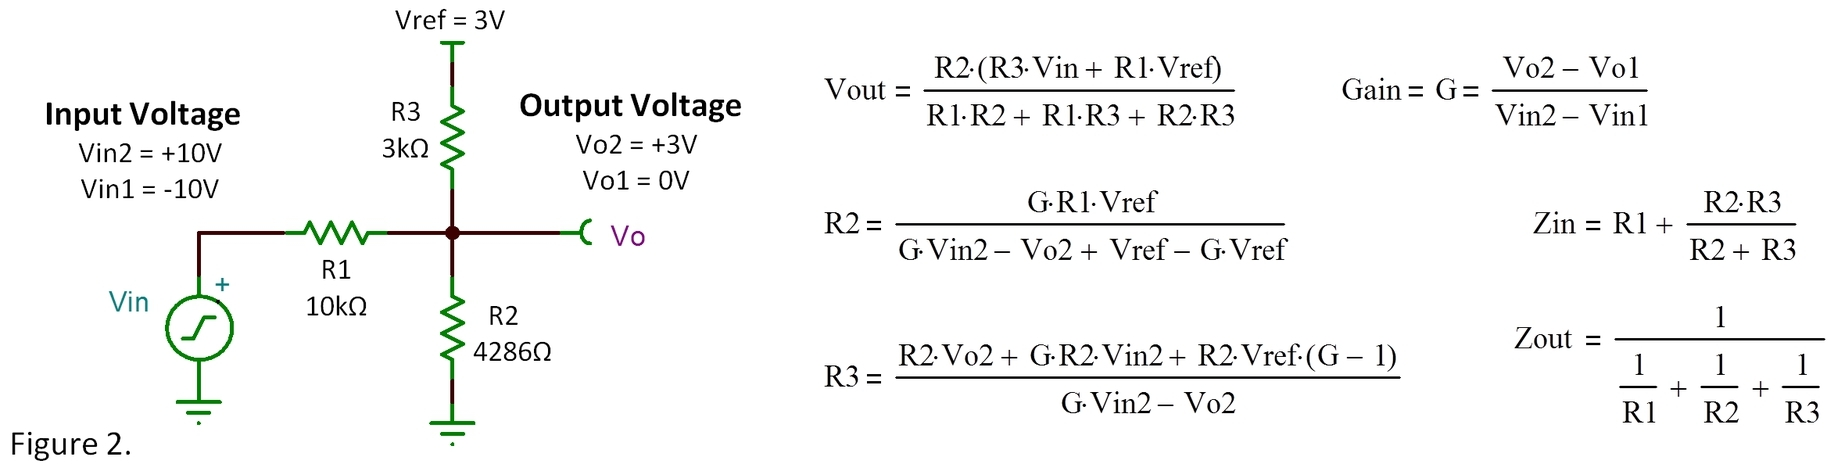 Handy Gadgets And Resistor Divider Calculations The Signal Voltage Circuit Example I Refined It A Bit Adding Some Checking For Out Of Bound Values Minimum Required Value Reference Try See